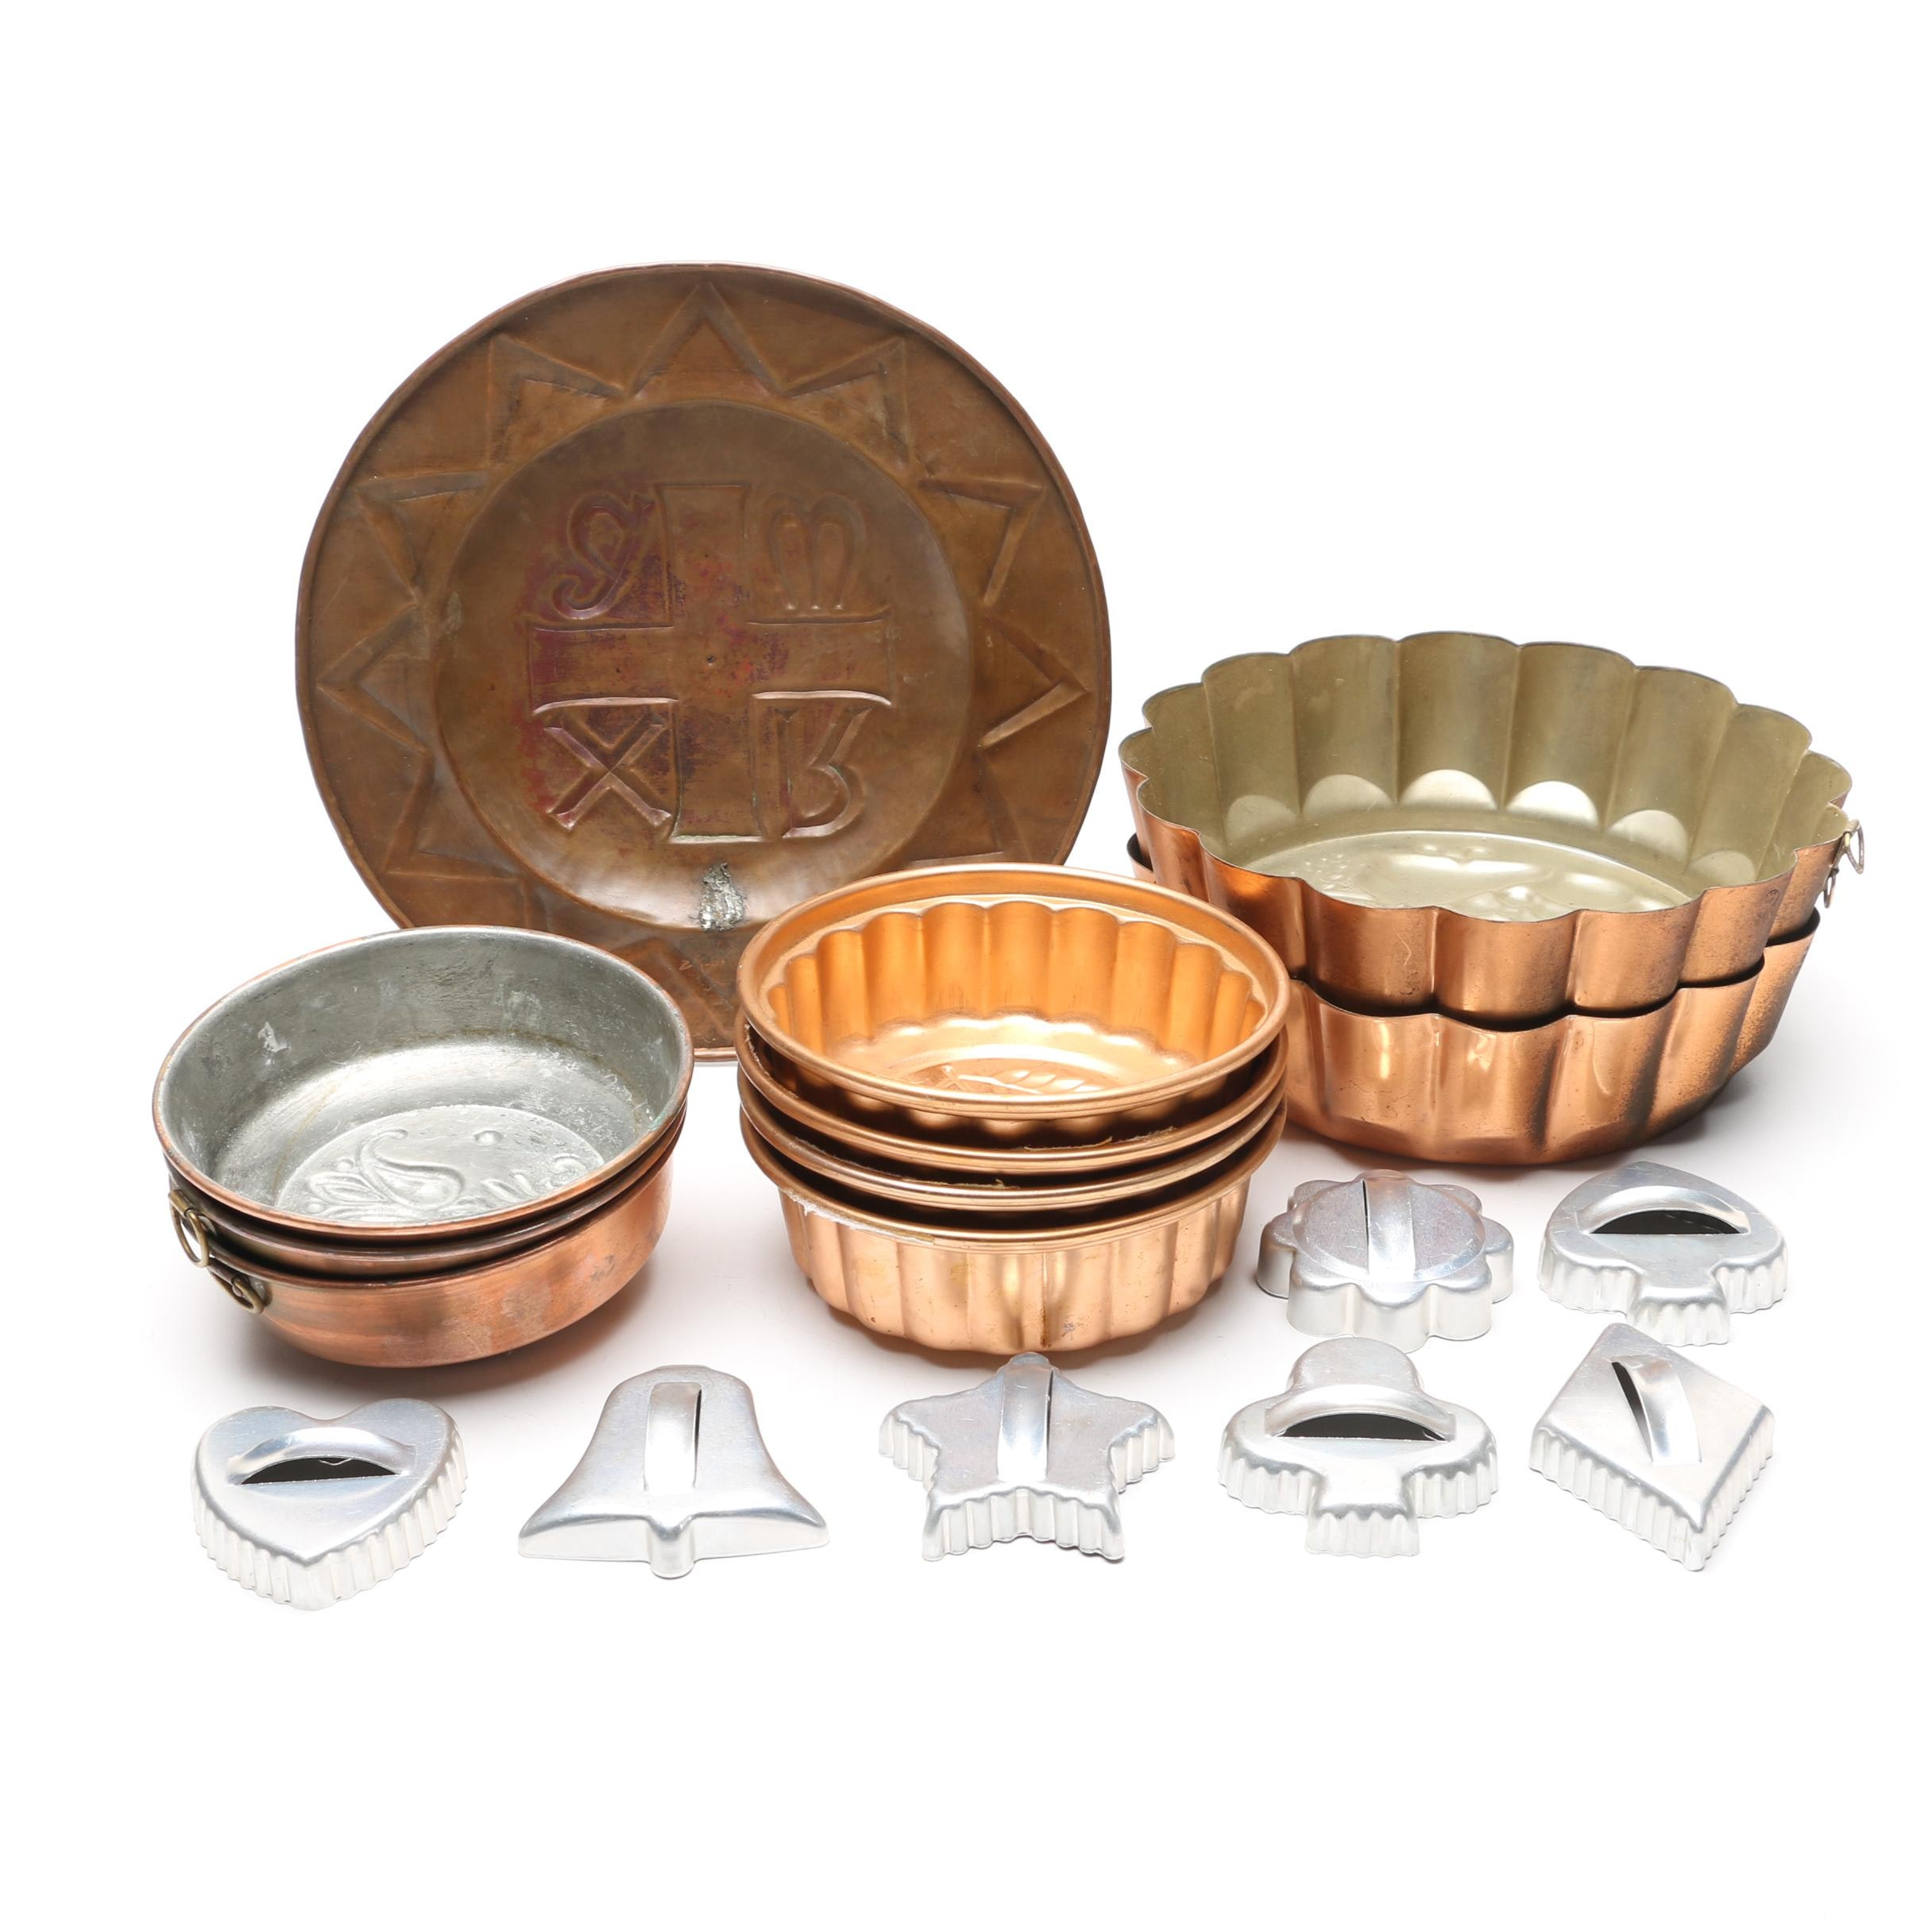 Copper Cake Pans and Molds